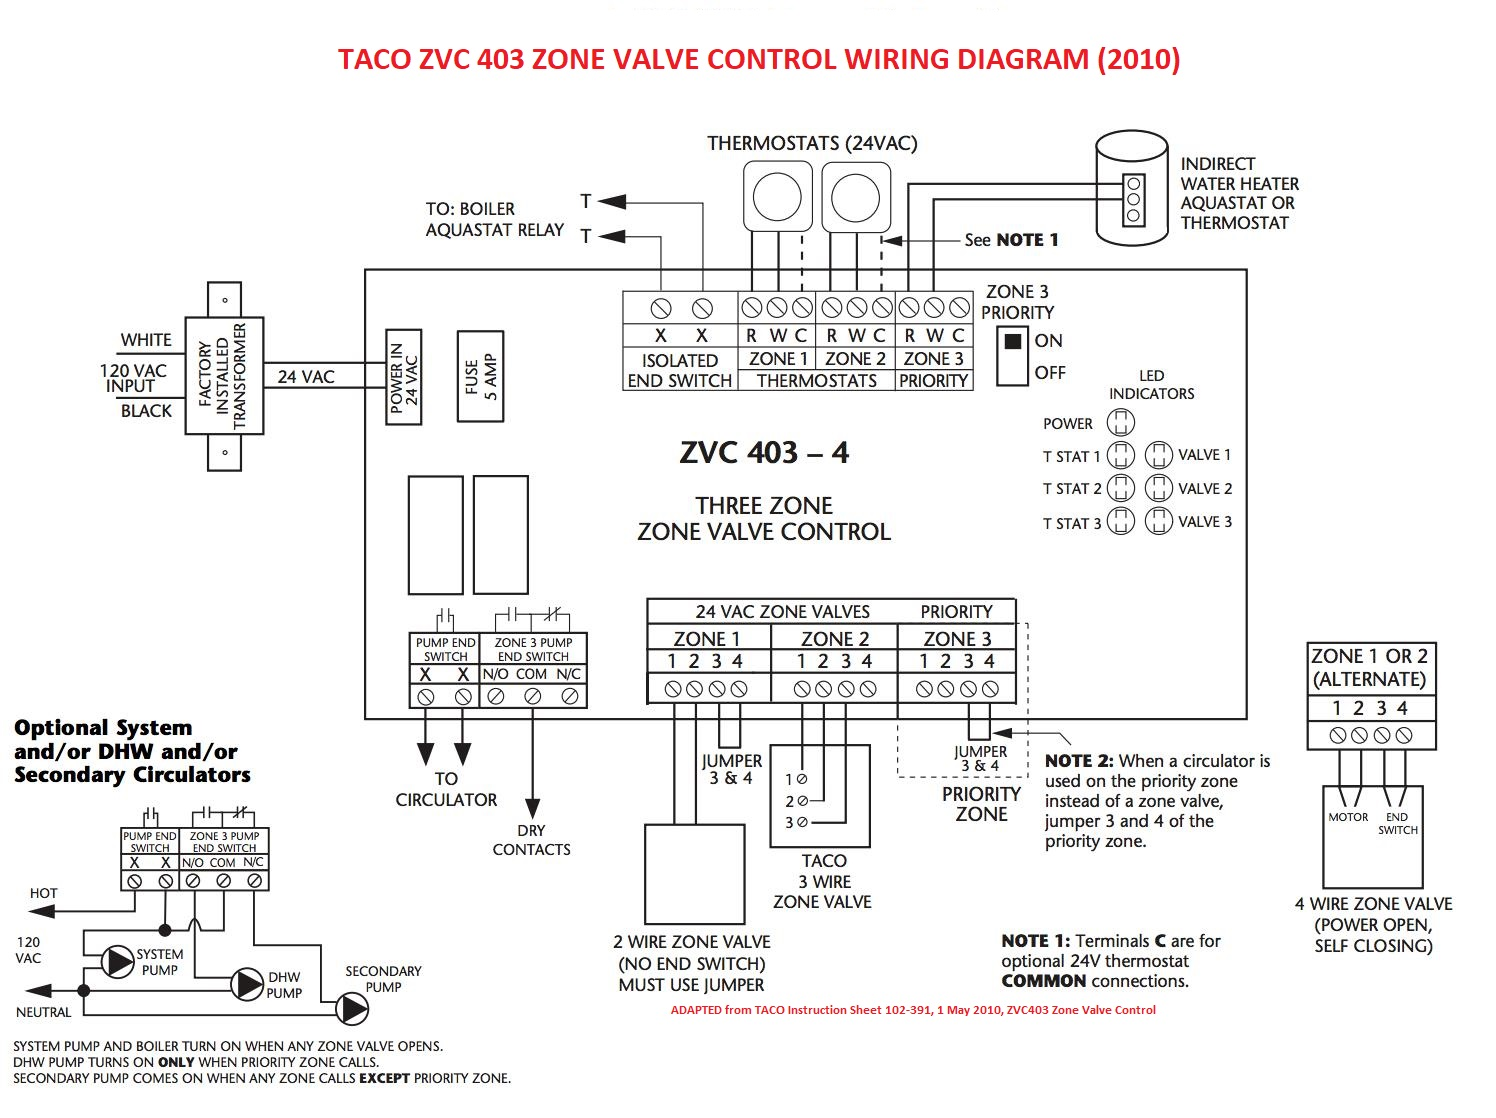 Schematic Diagram Visio Template together with Volkswagen Transporter T3 Type 2 1979 1992 Fuse Box Diagram likewise Honeywell Rthl2510 Thermostat Wiring Diagram in addition Watch besides 411. on hvac wiring diagrams